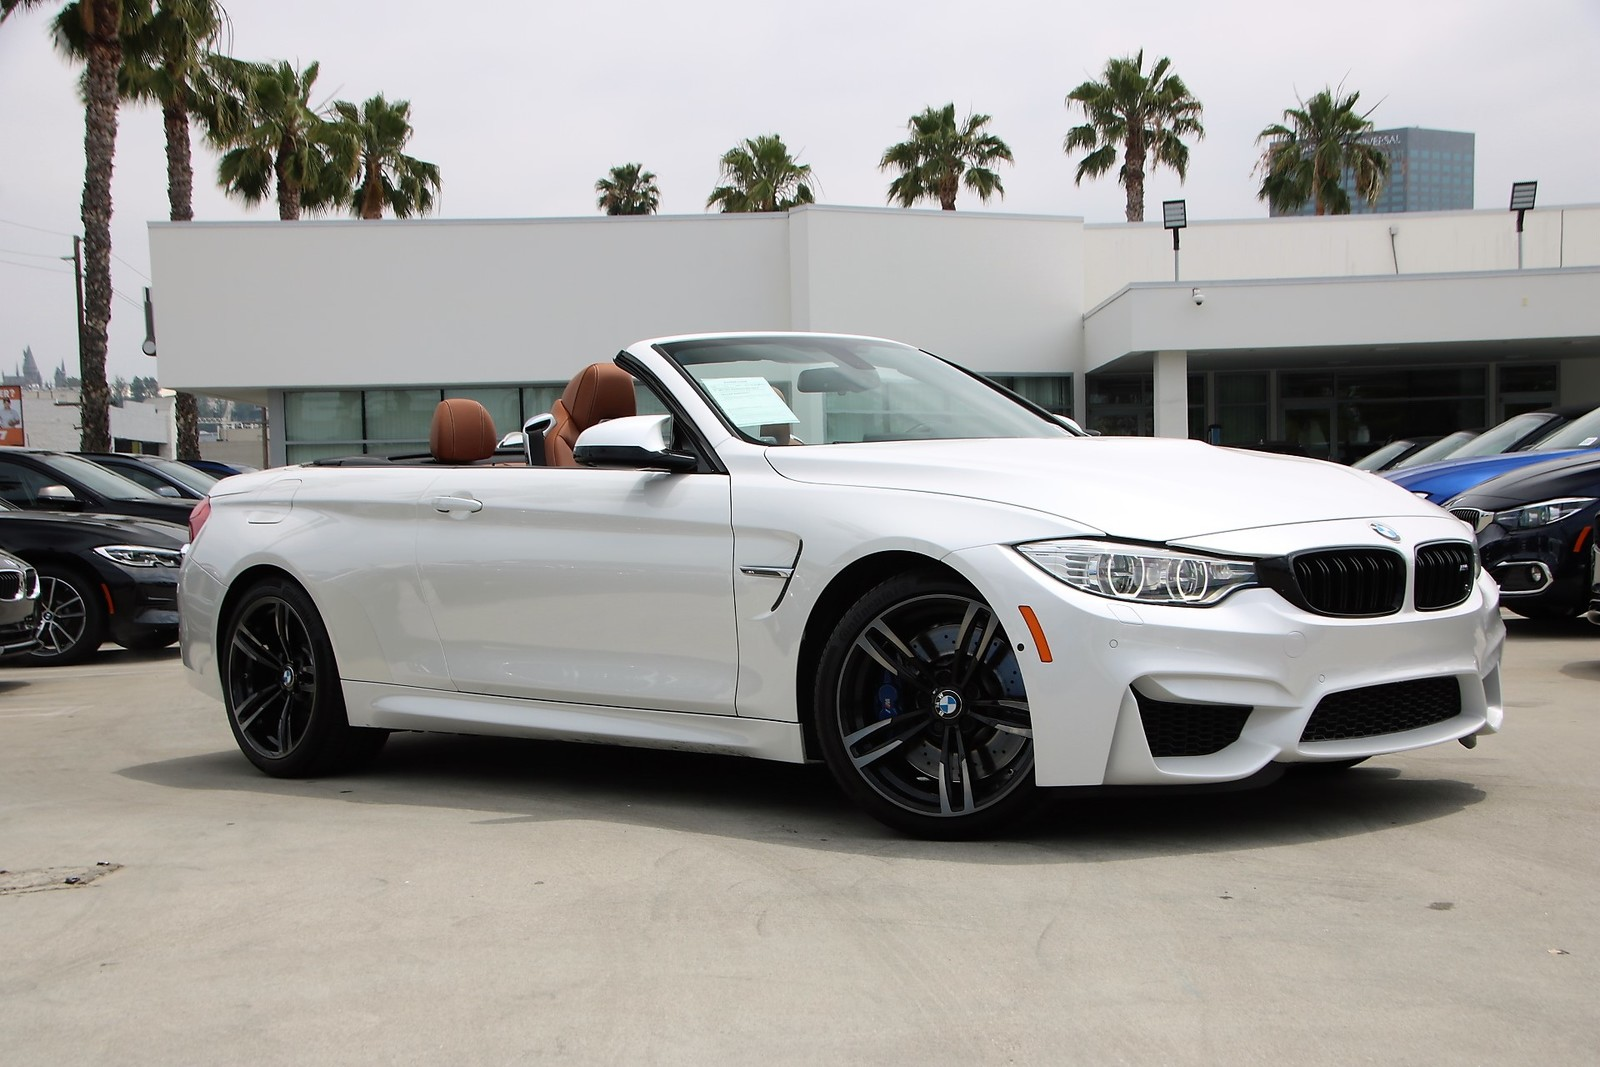 Certified Pre Owned Bmw >> Certified Pre Owned 2016 Bmw M4 2dr Conv In North Hollywood P67682